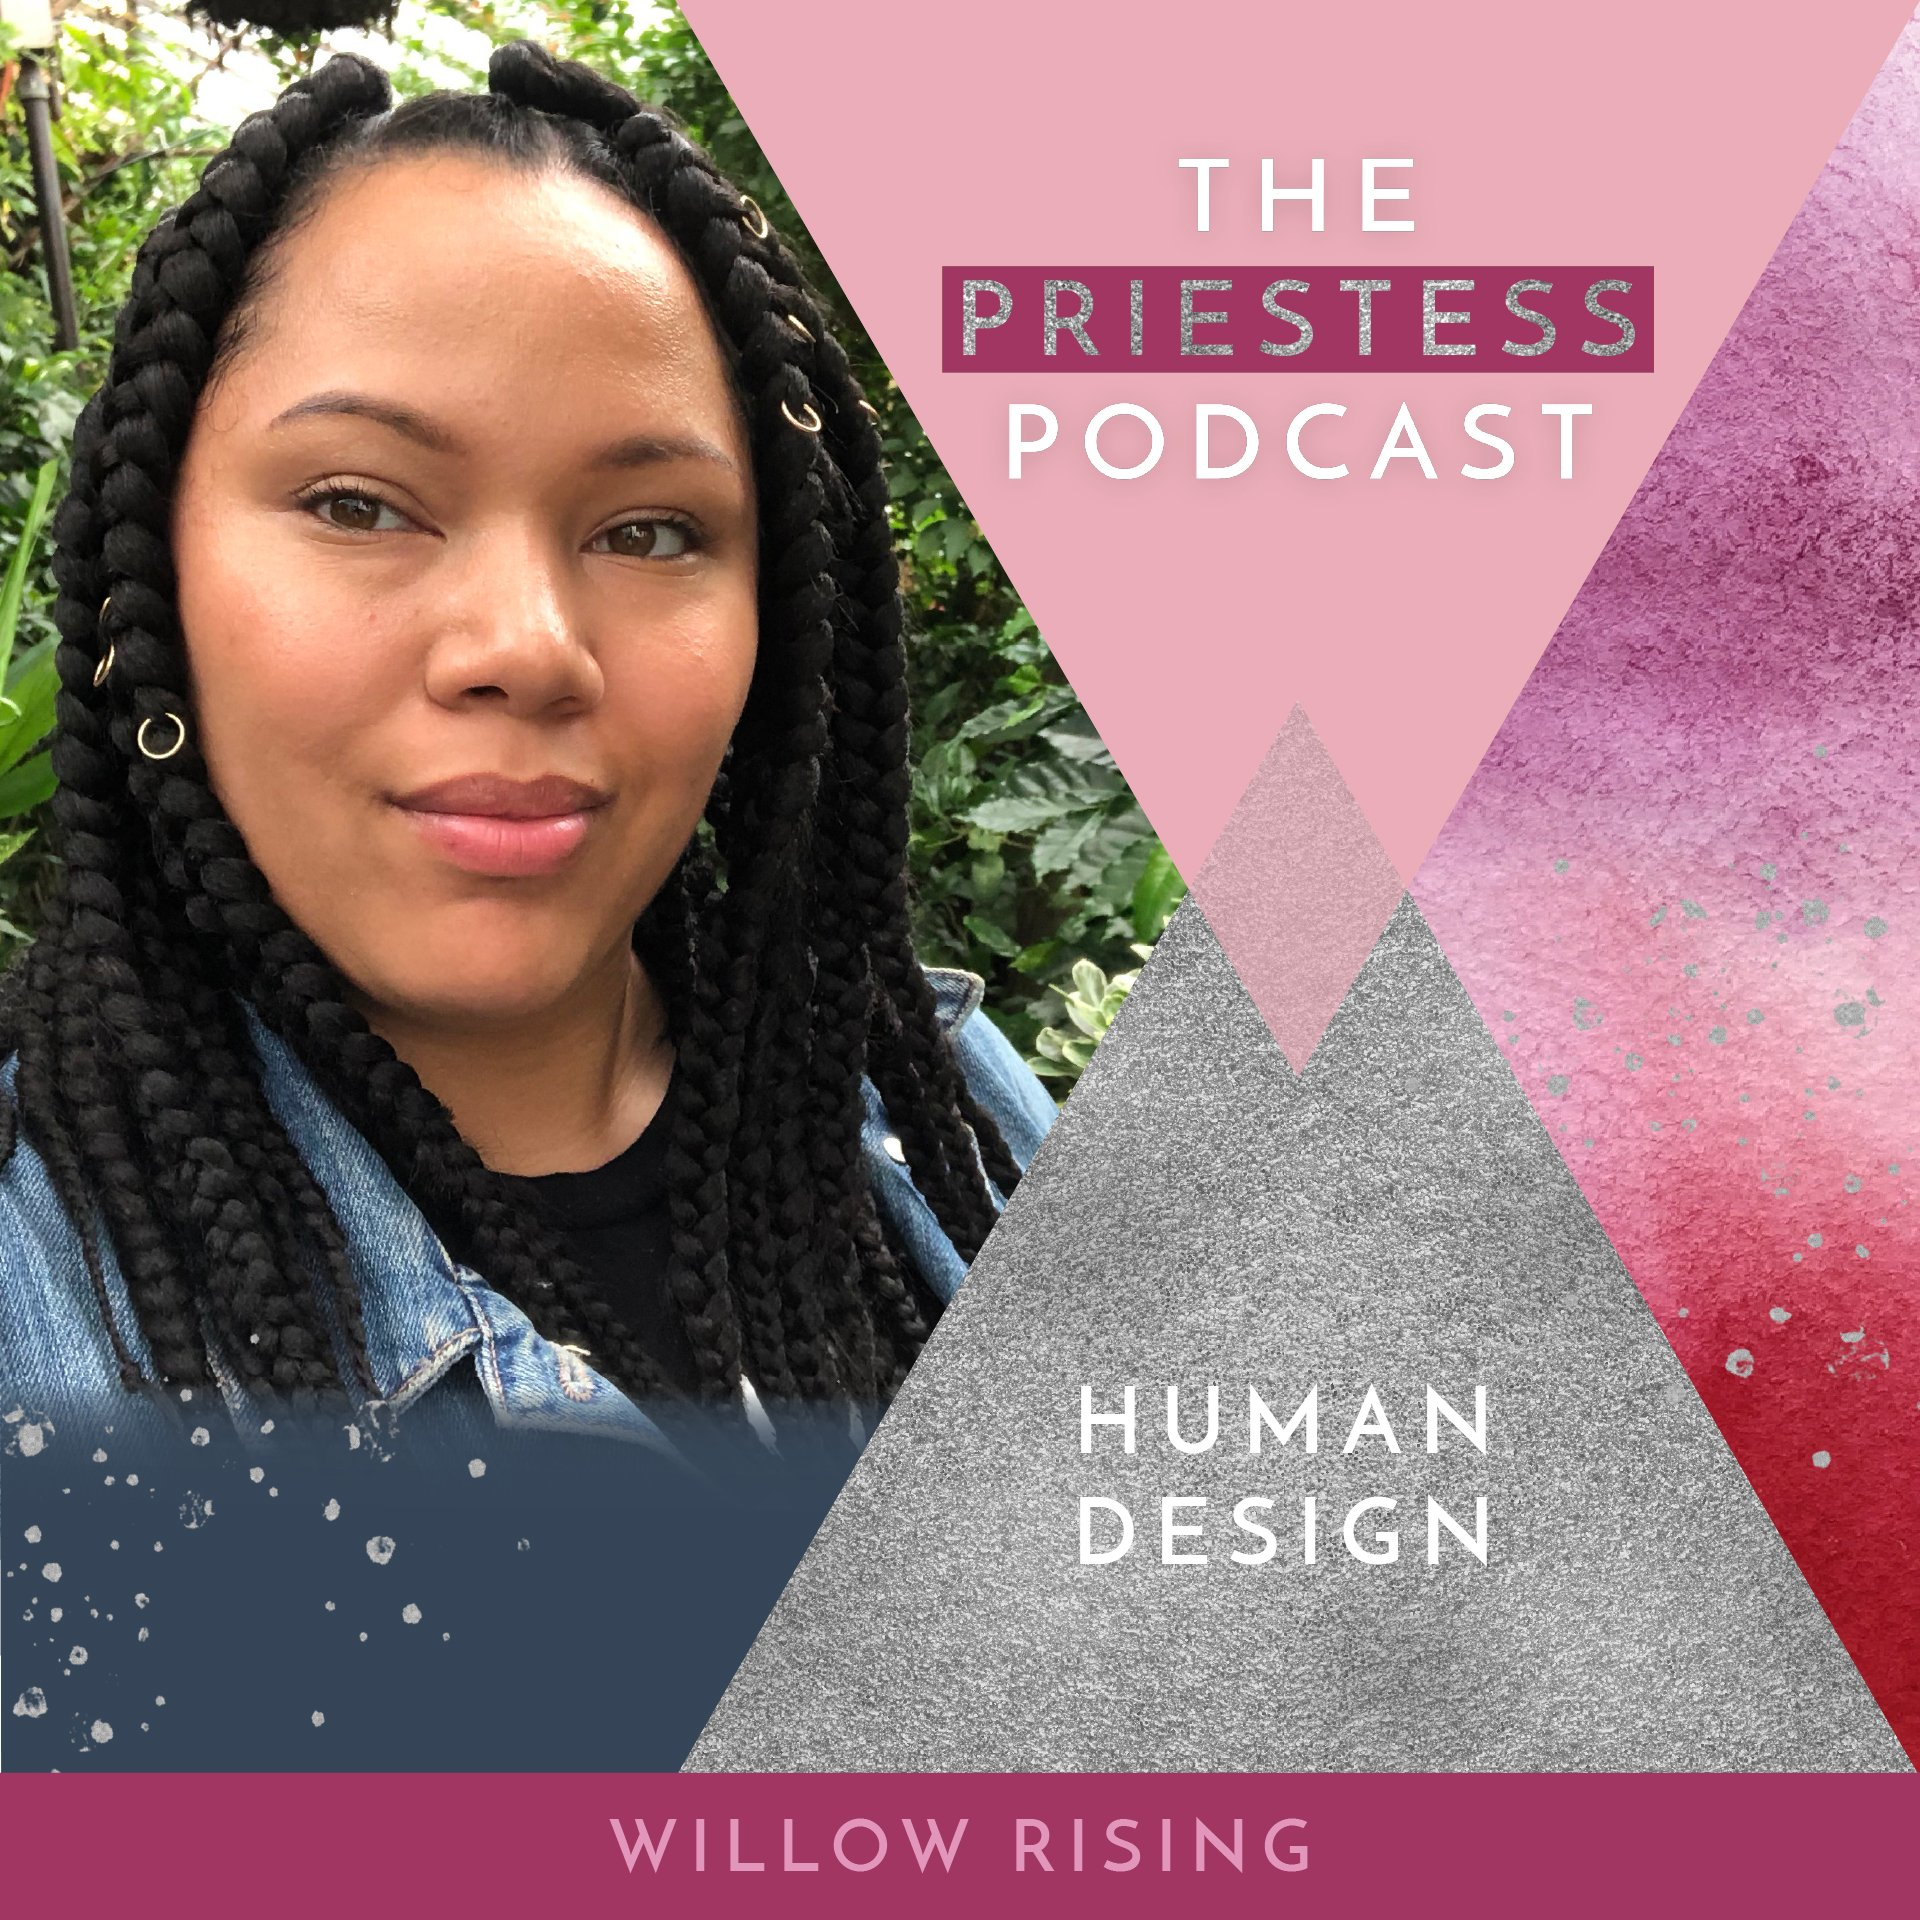 Willow Rising on Human Design